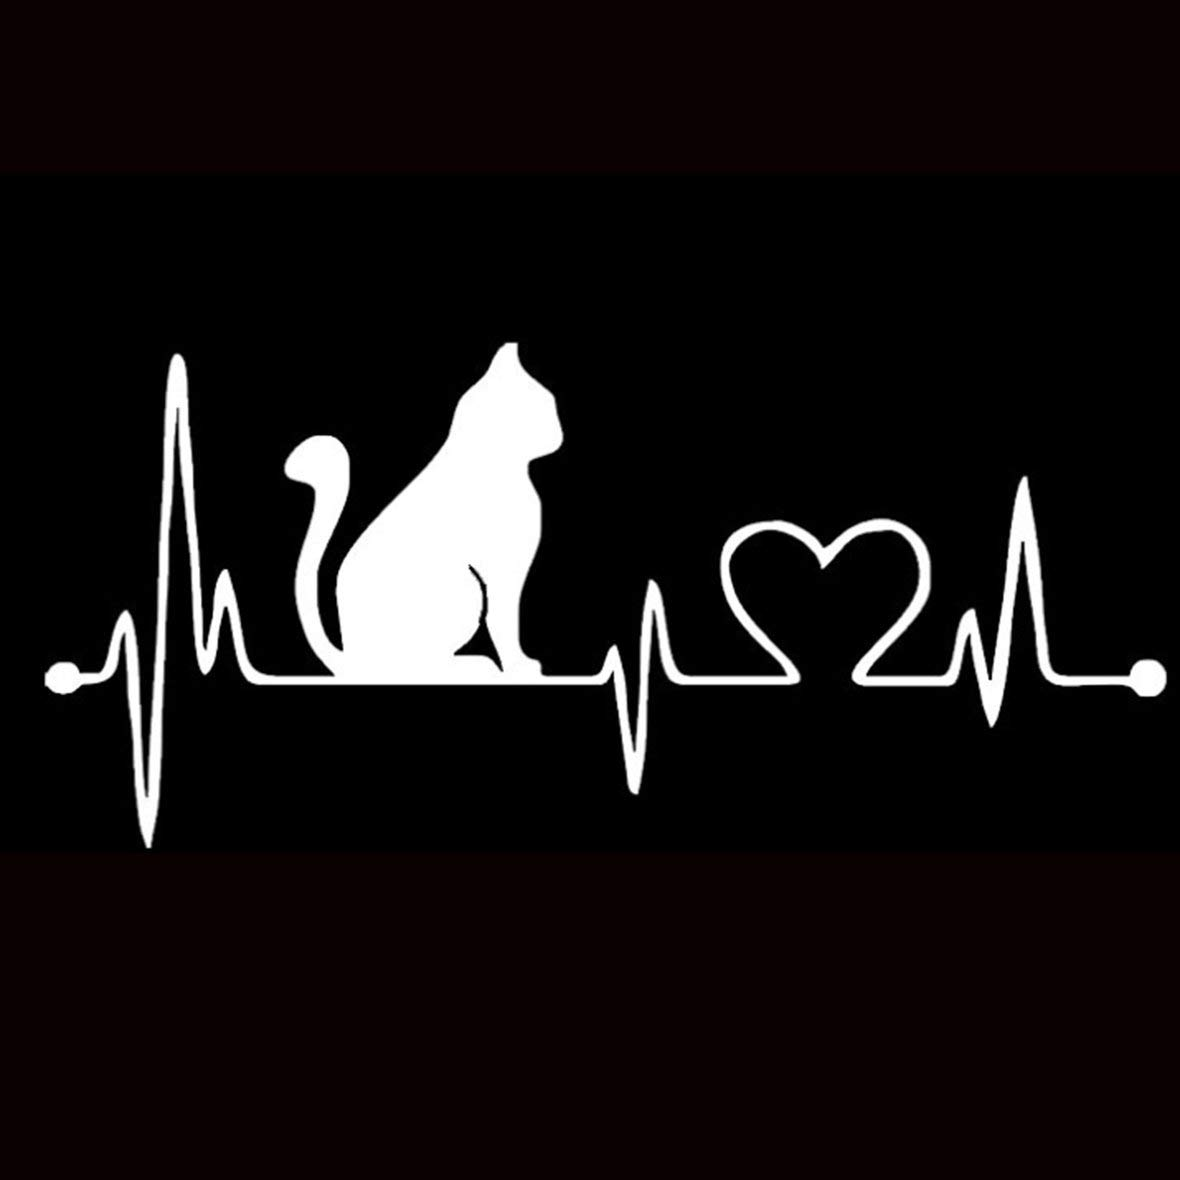 Tivolii Car Sticker Pet Cat Heartbeat Lifeline PET Decal Unique Car Body Stickers Car Styling Truck Accessories